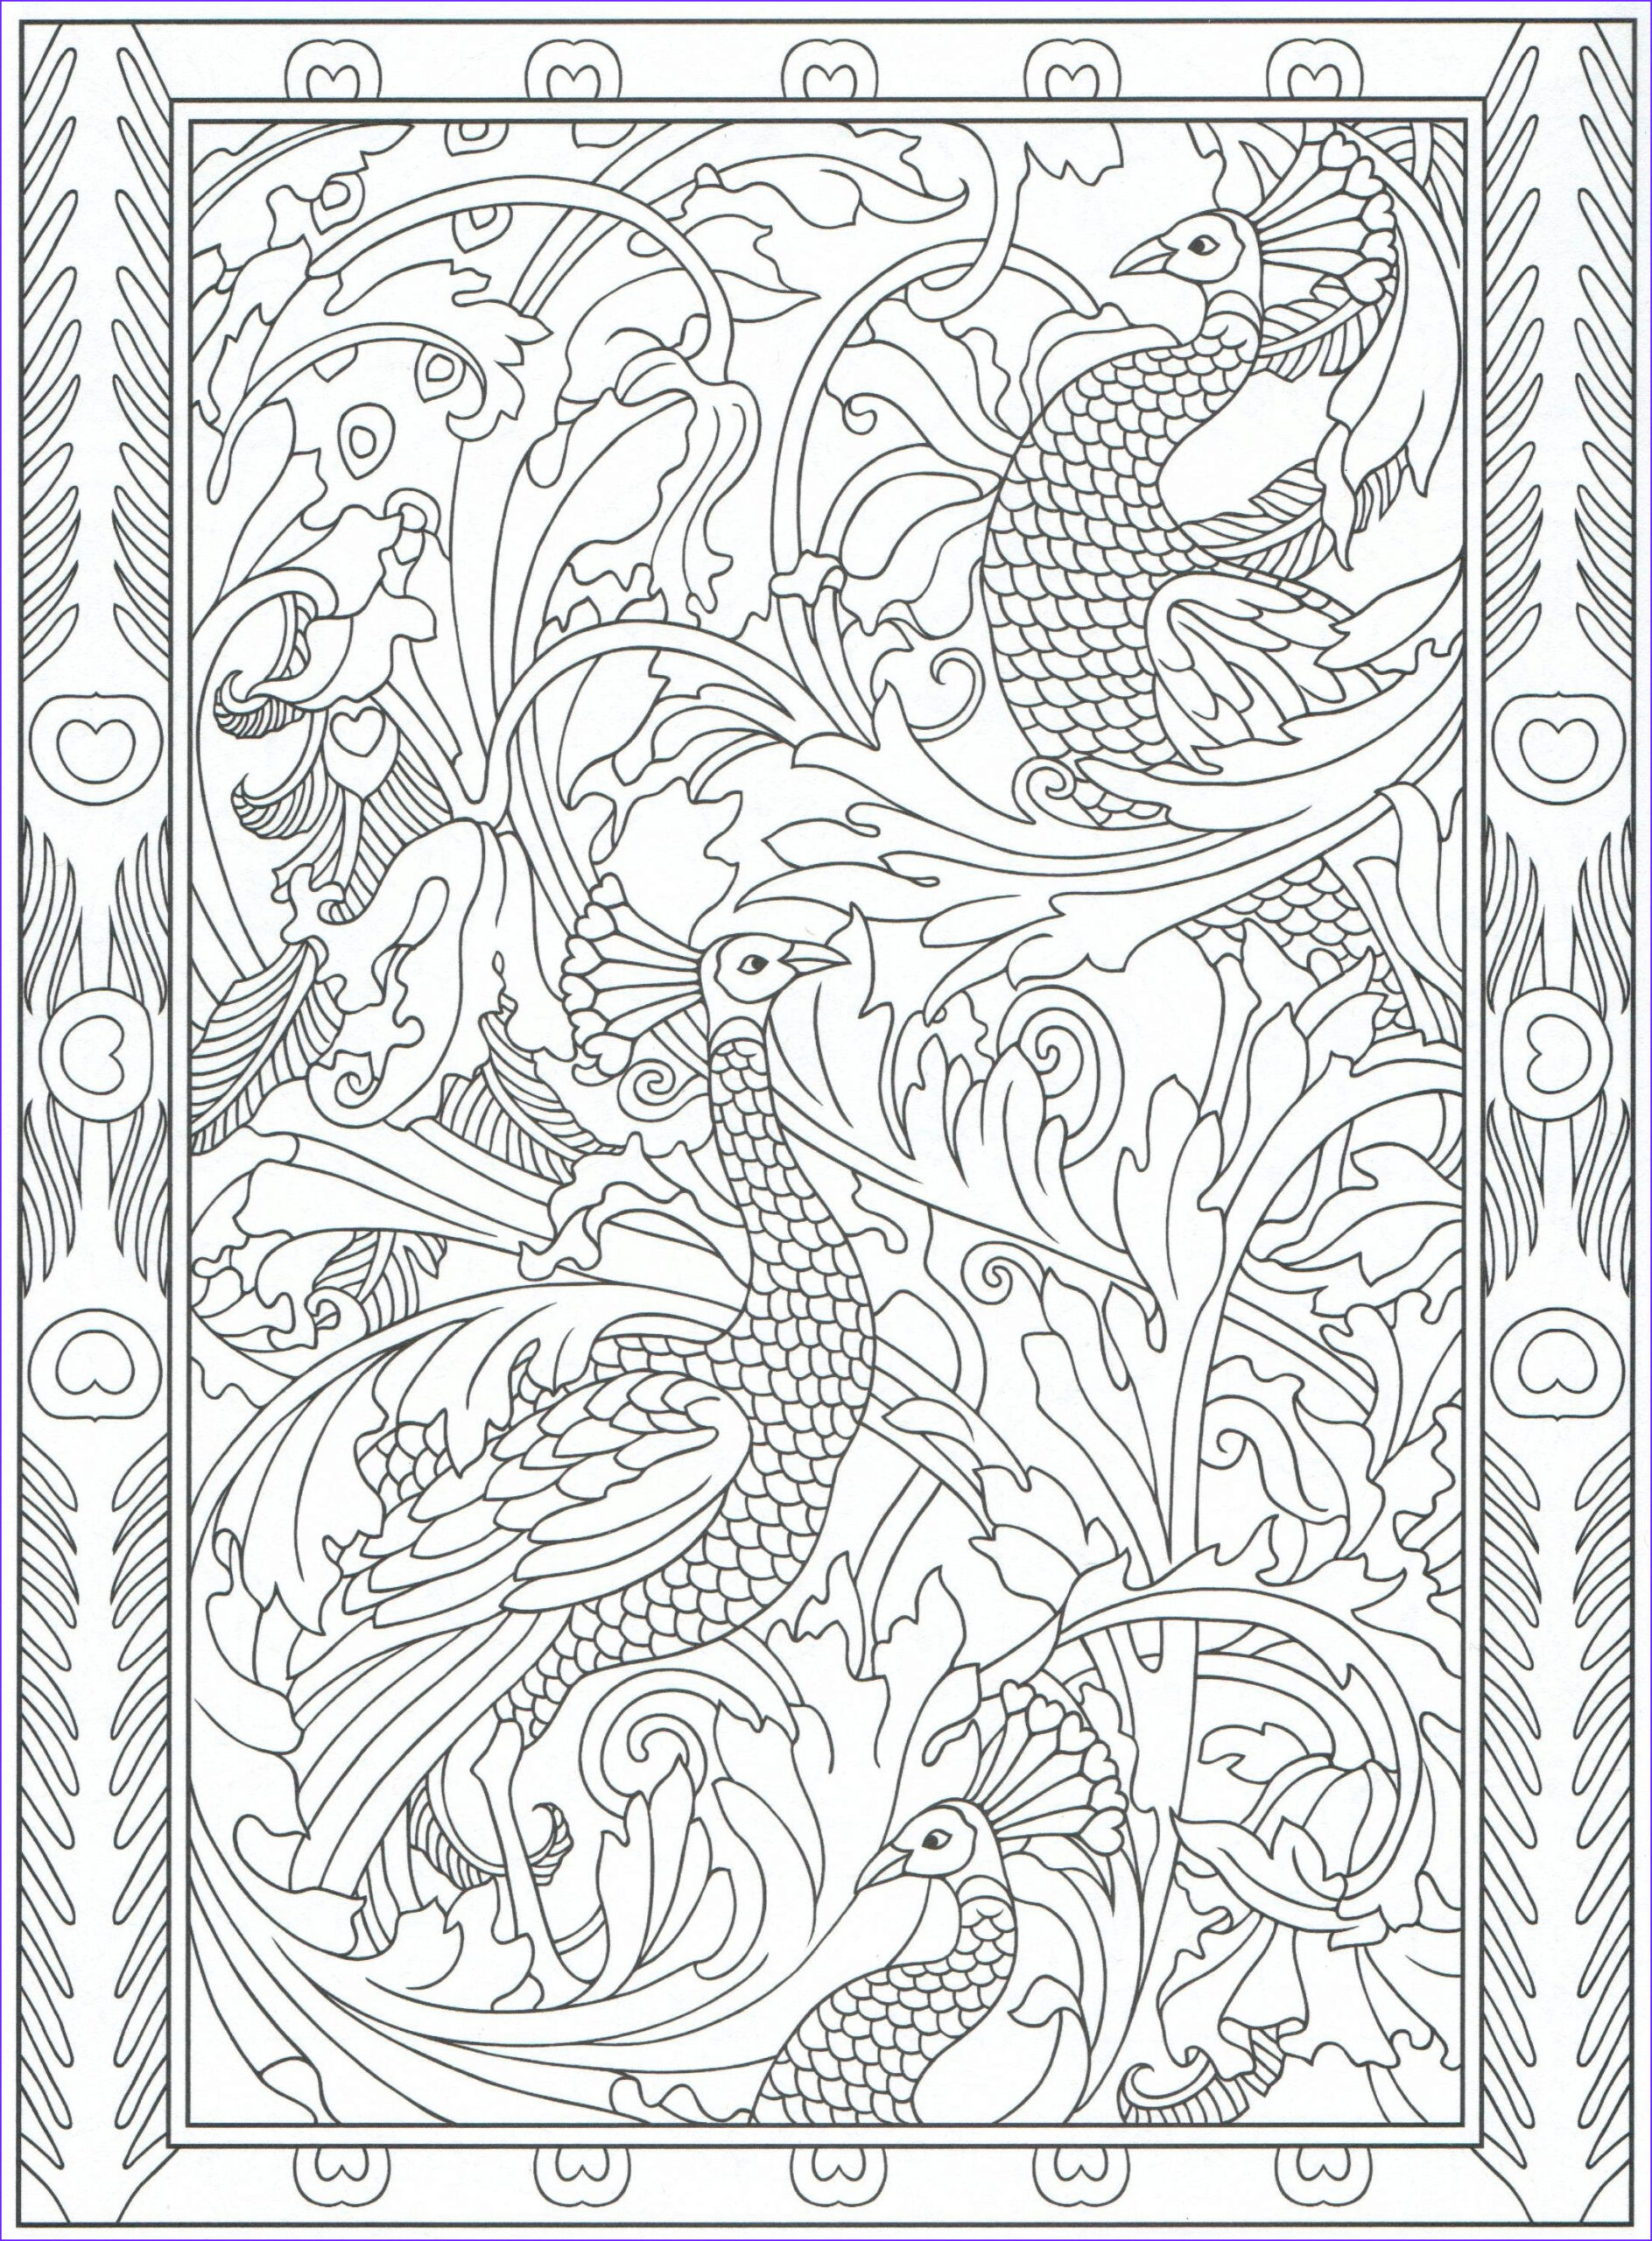 Peacock Coloring Book Beautiful Image Peacock Coloring Page for Adults 5 31